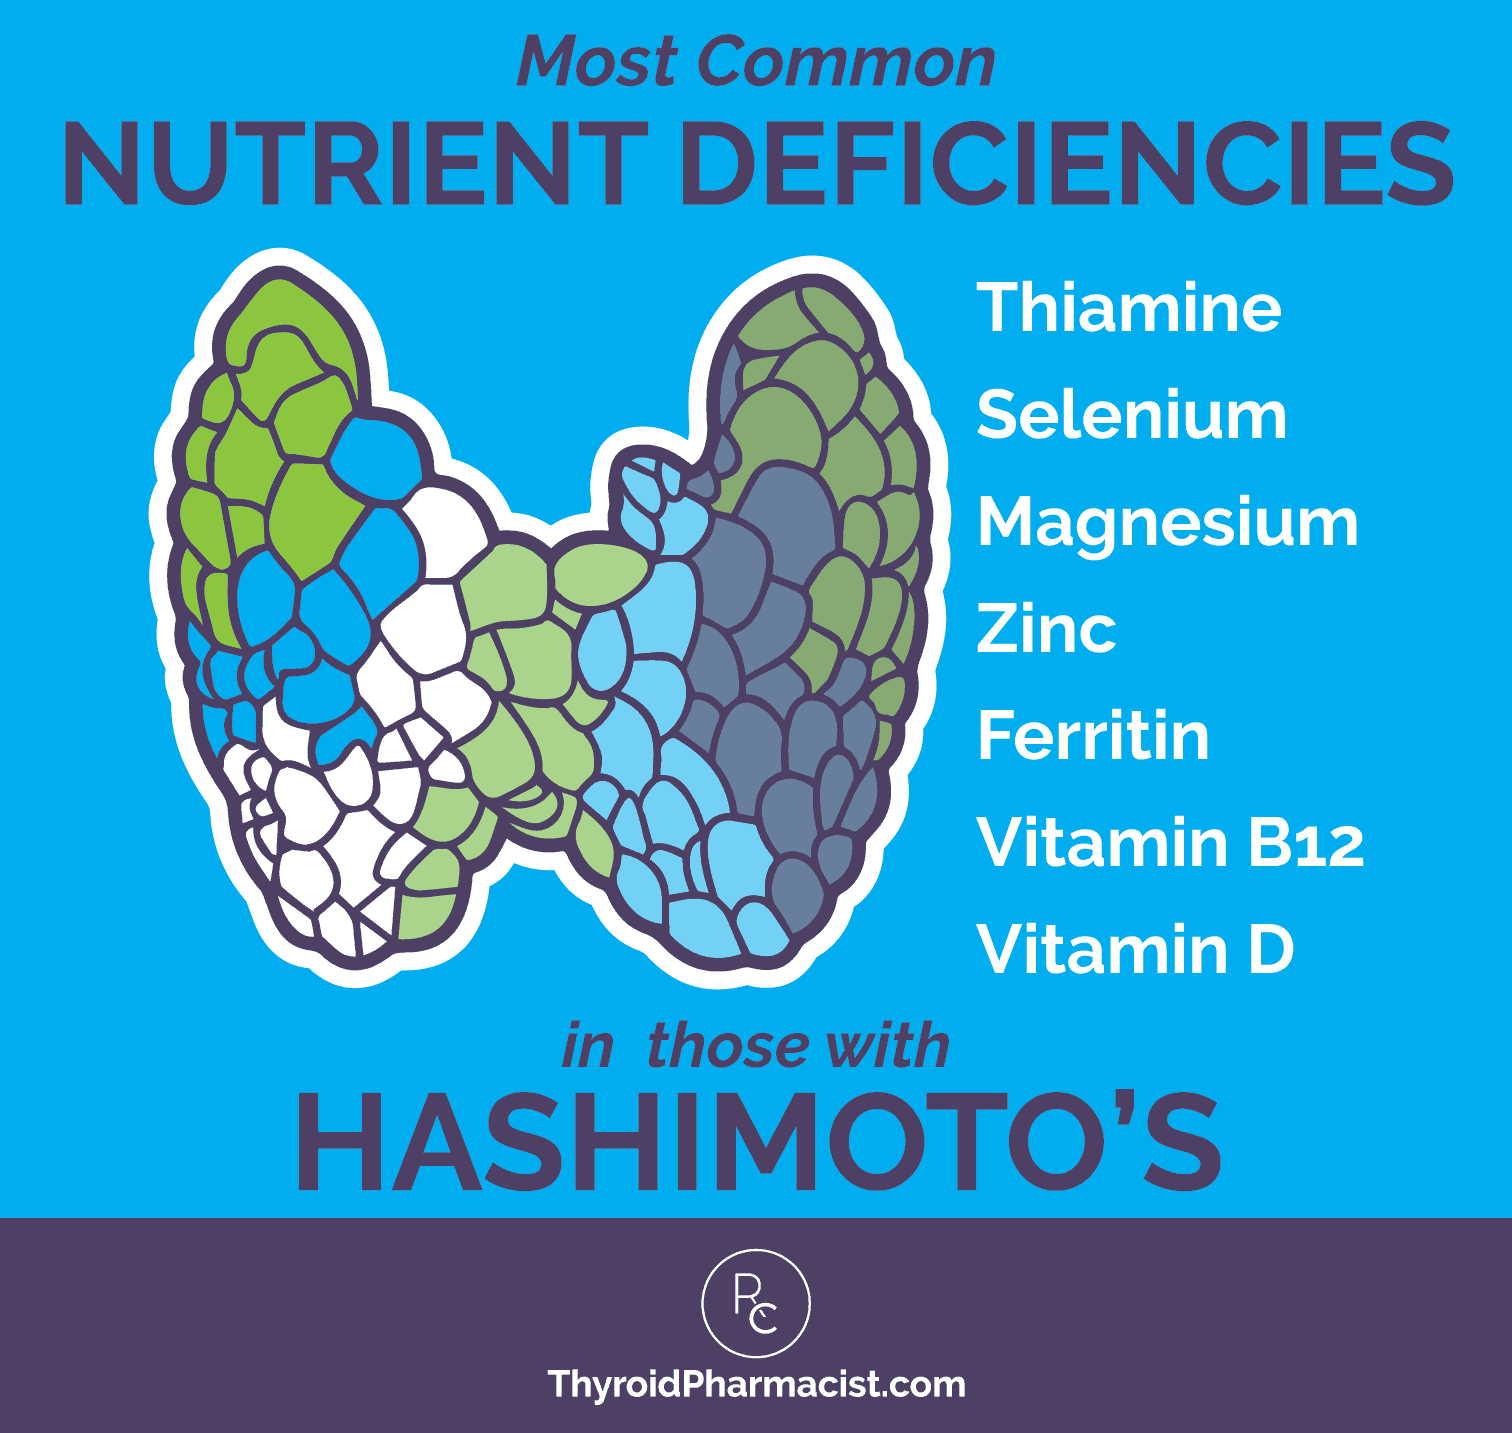 Most Common Nutrient Deficiencies